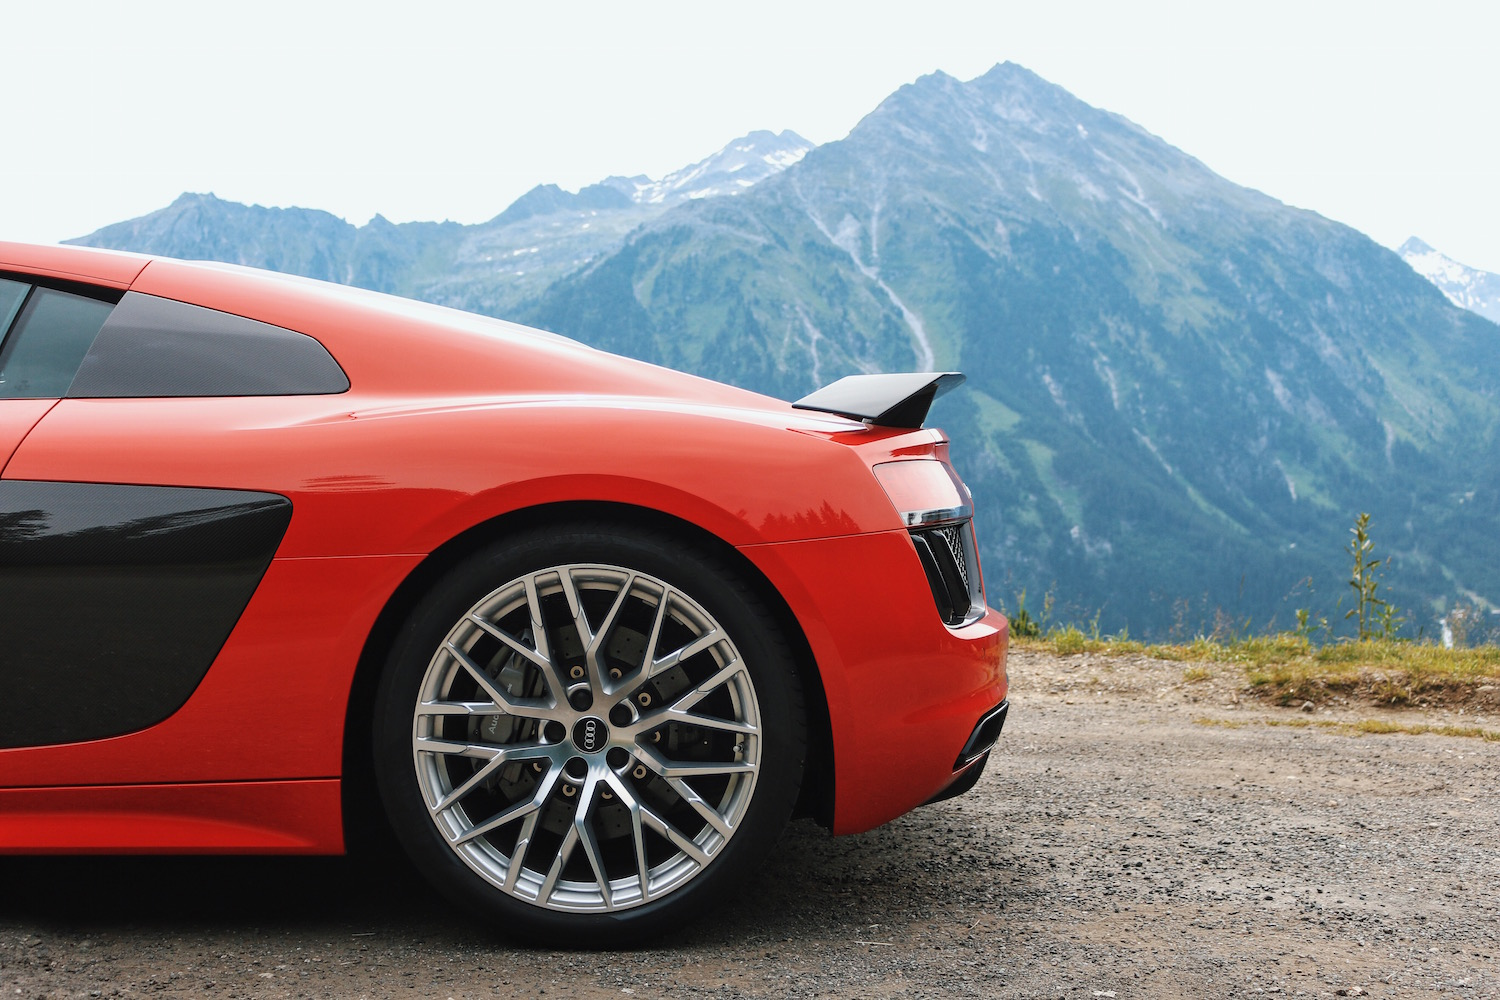 Audi R8 Tour Gerlospass Meanwhile in Awesometown Mens Fashion and Lifestyle Blogger from Austria Red Audi R8 V10